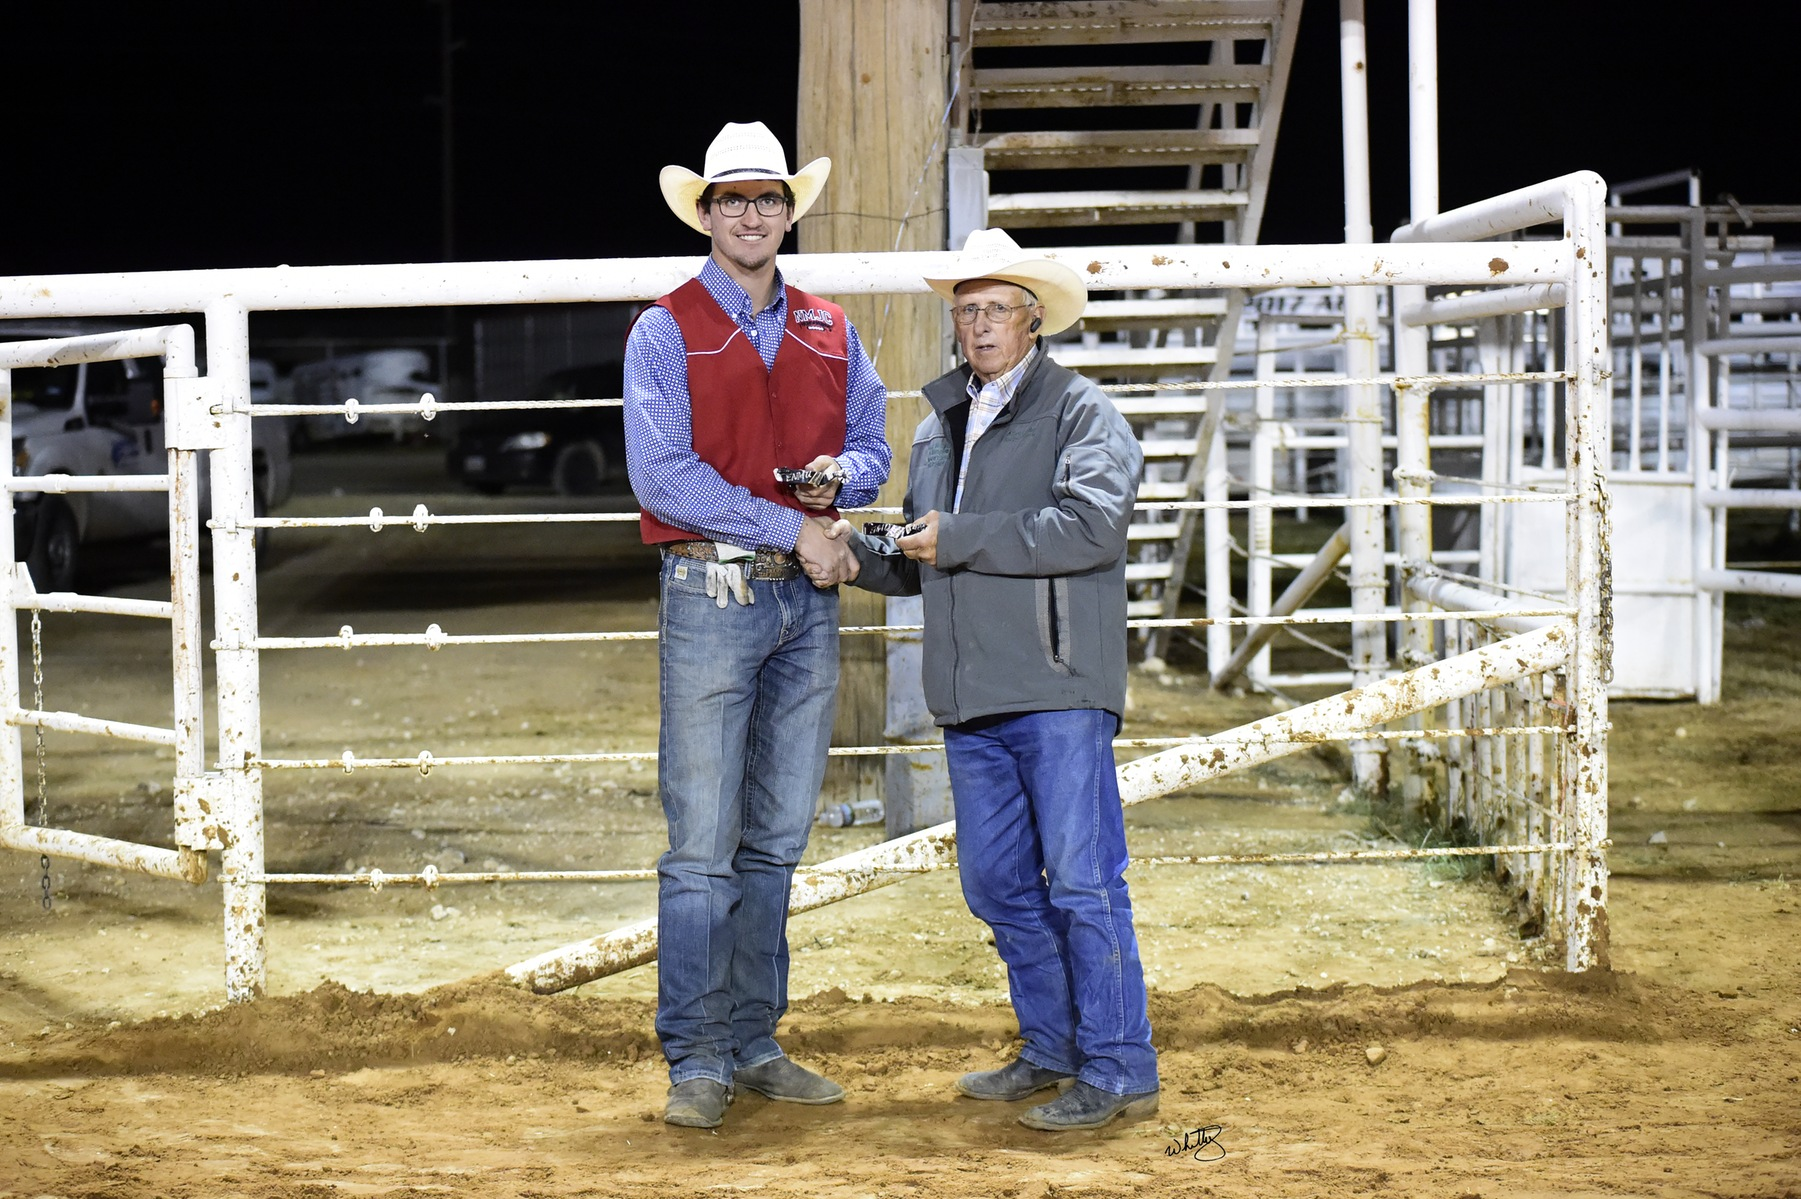 NMJC's Tee McLeod Wins the Men's All Around Champion ENMU Rodeo